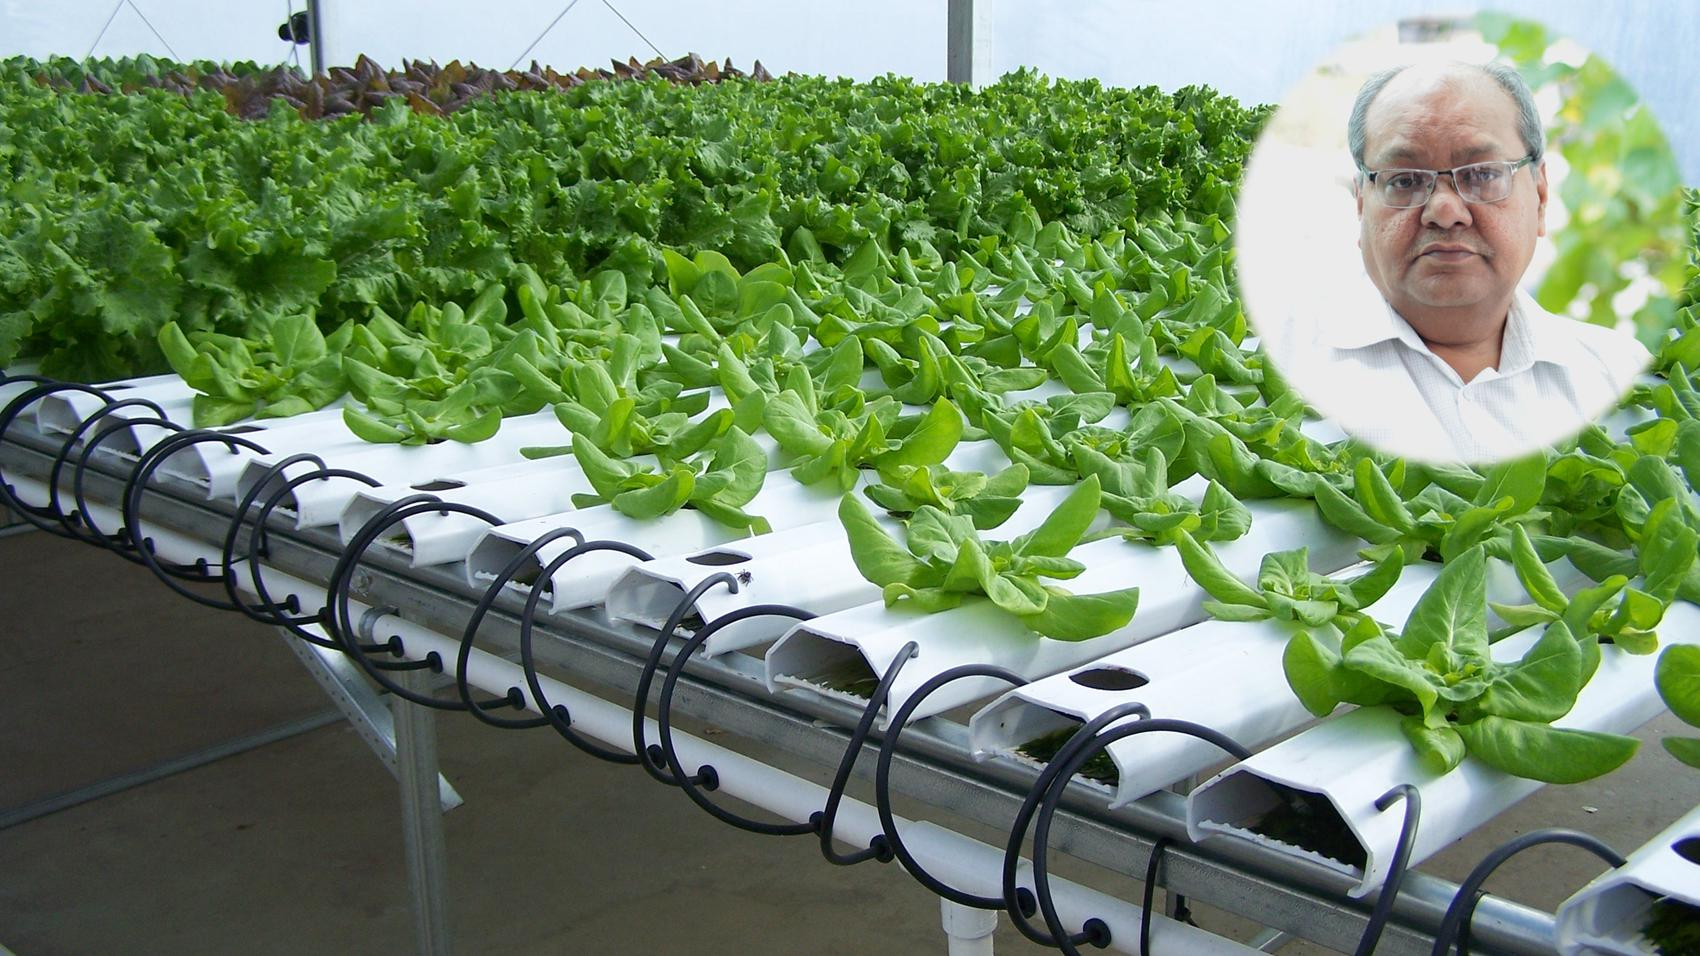 Career in Hydroponic Cultivation